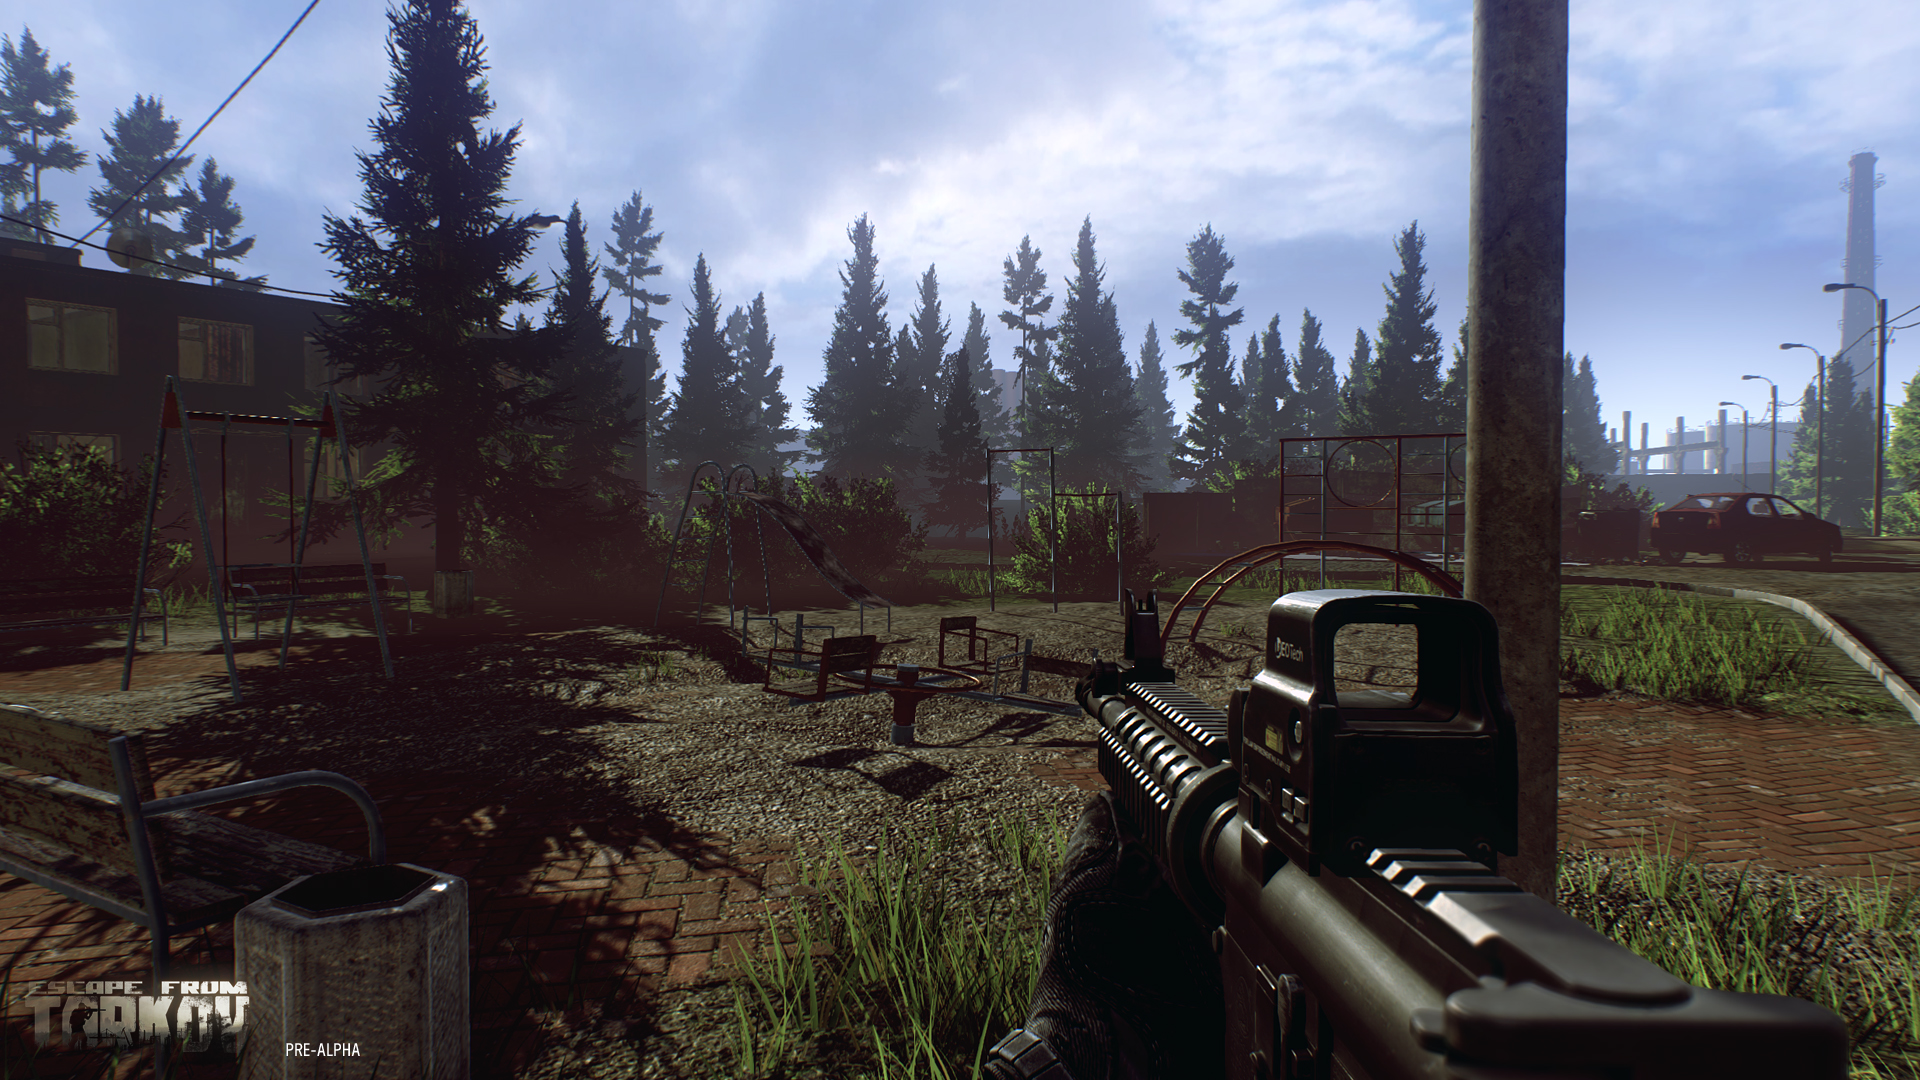 Escape From Tarkov Wallpaper 4k: Escape From Tarkov Announces Its Closed Beta Date